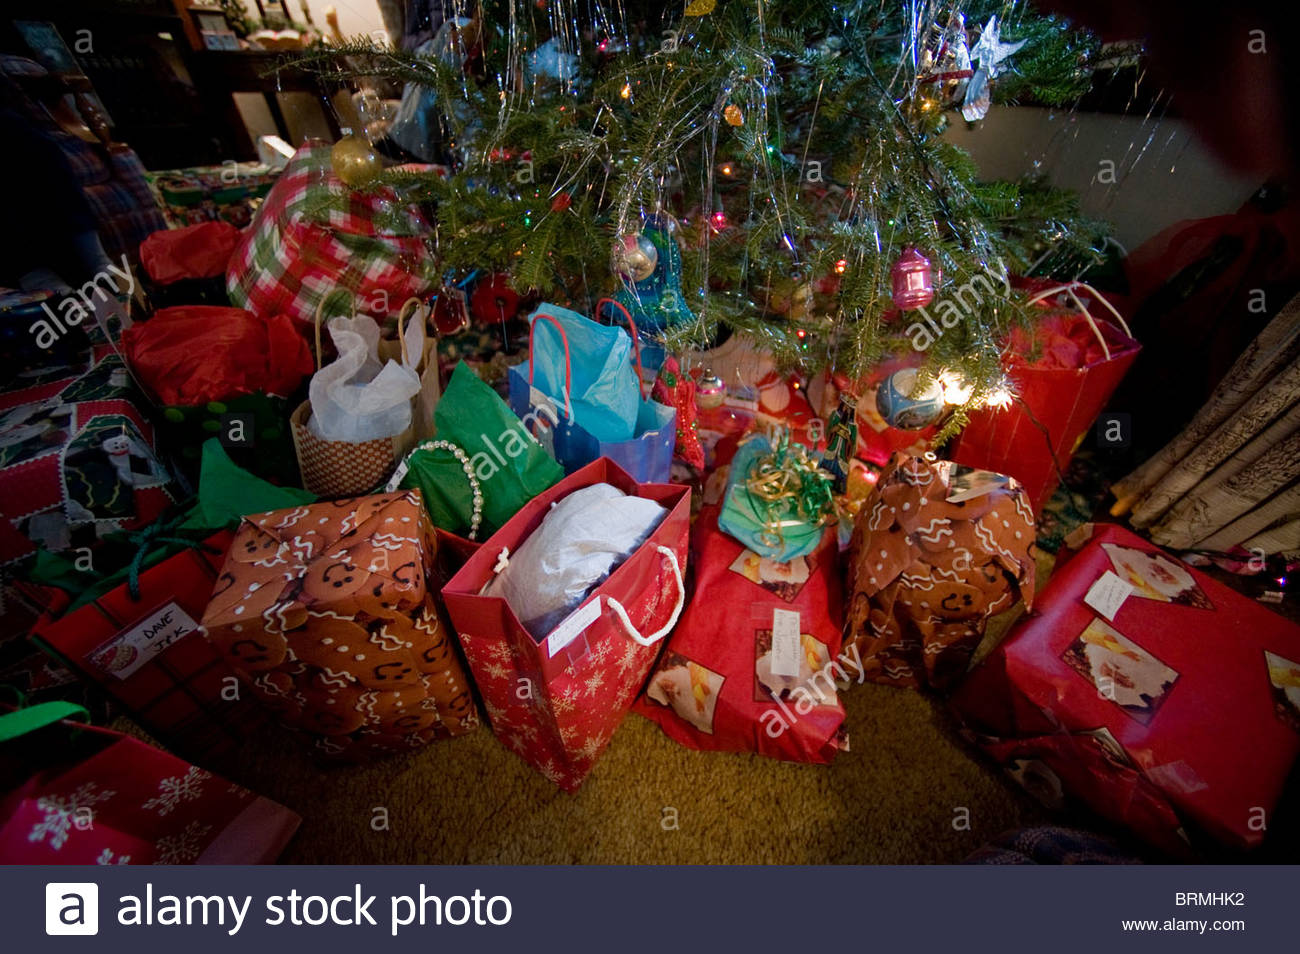 Christmas presents fill a living room on Christmas morning. - Stock Image